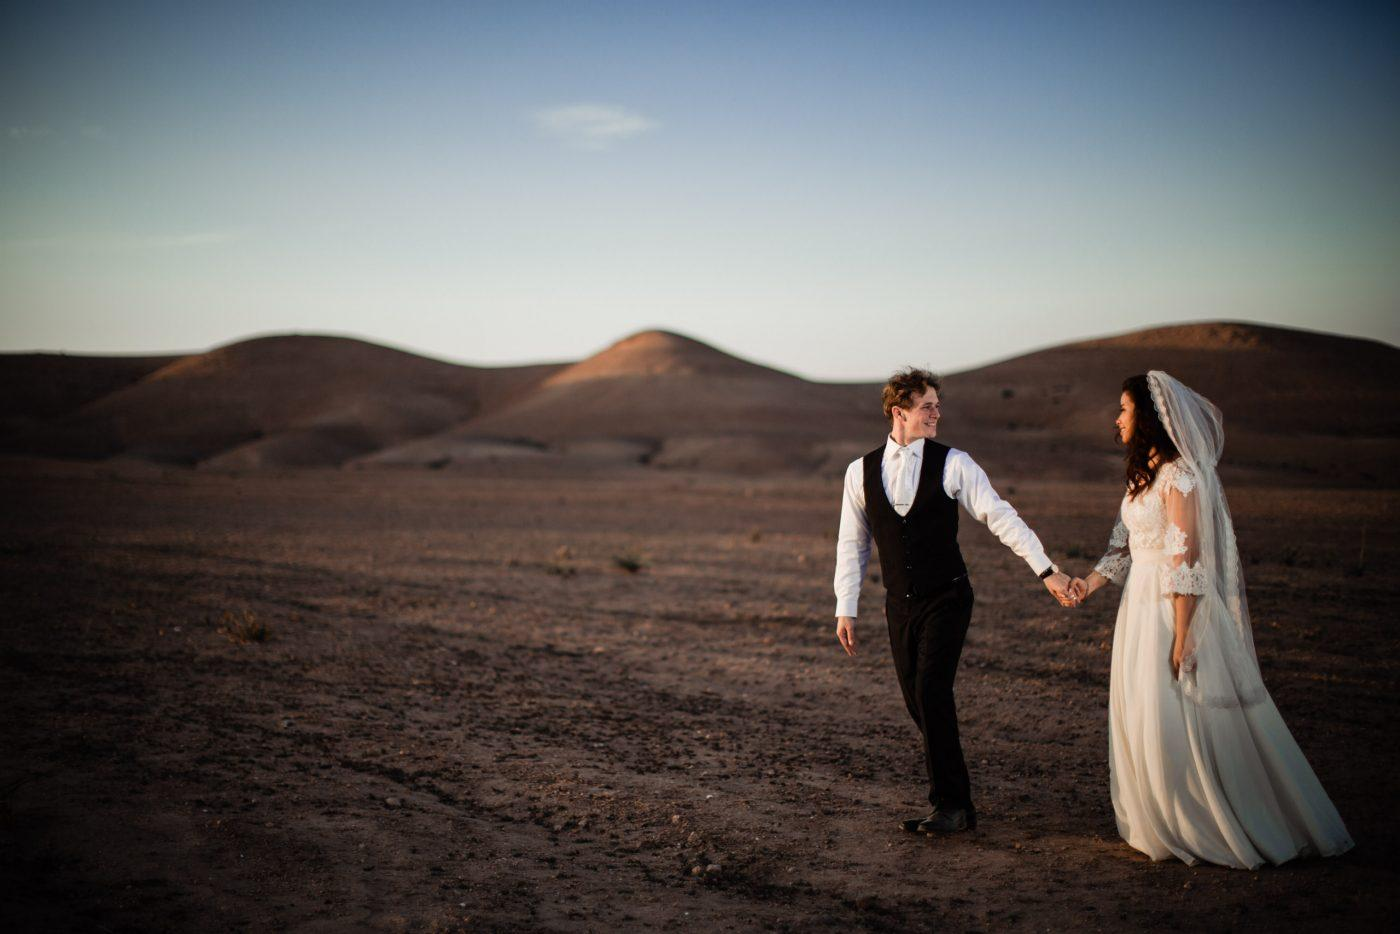 Beautiful Destination Wedding photography in Agafay Desert marrakech.